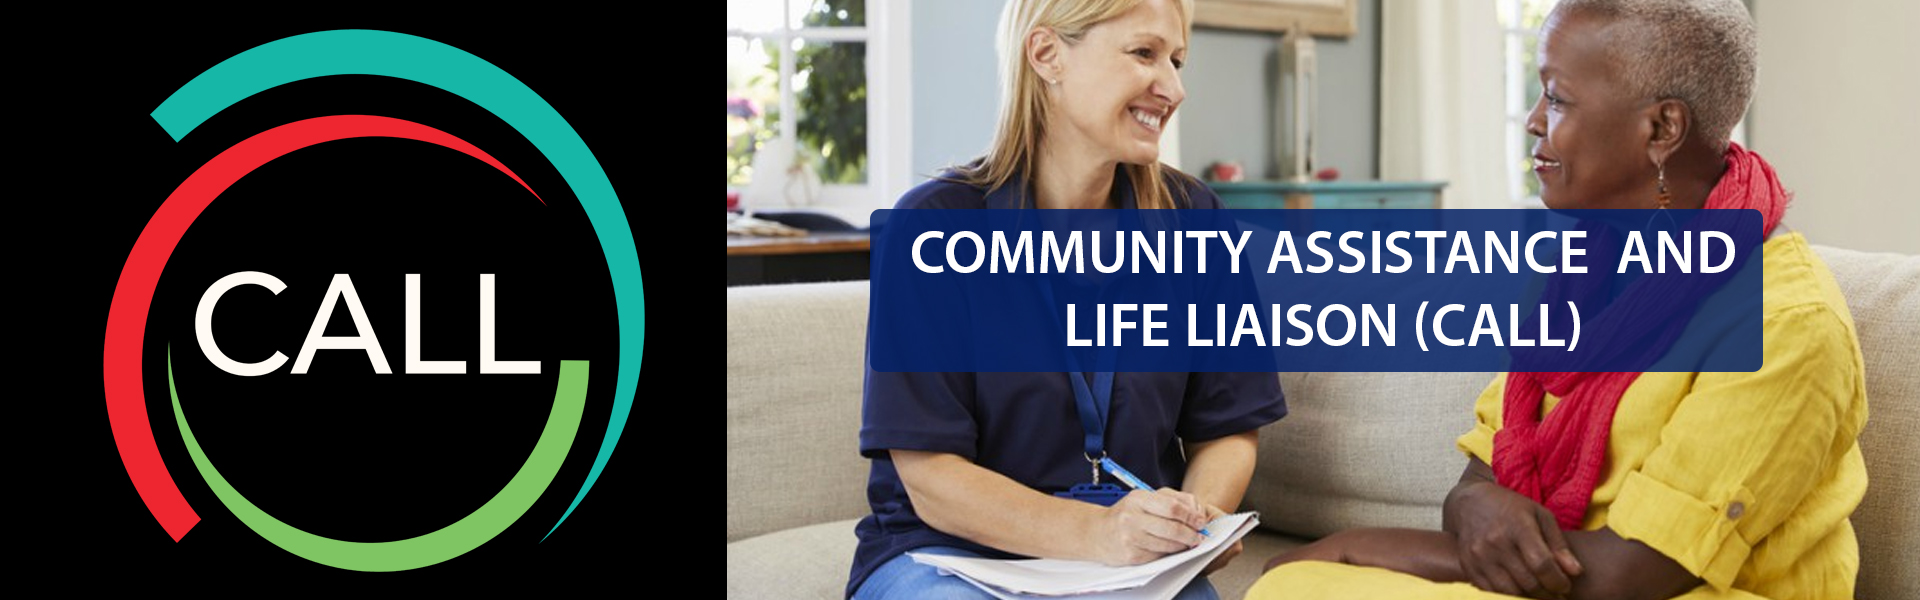 Community Assistance and Life Liaison